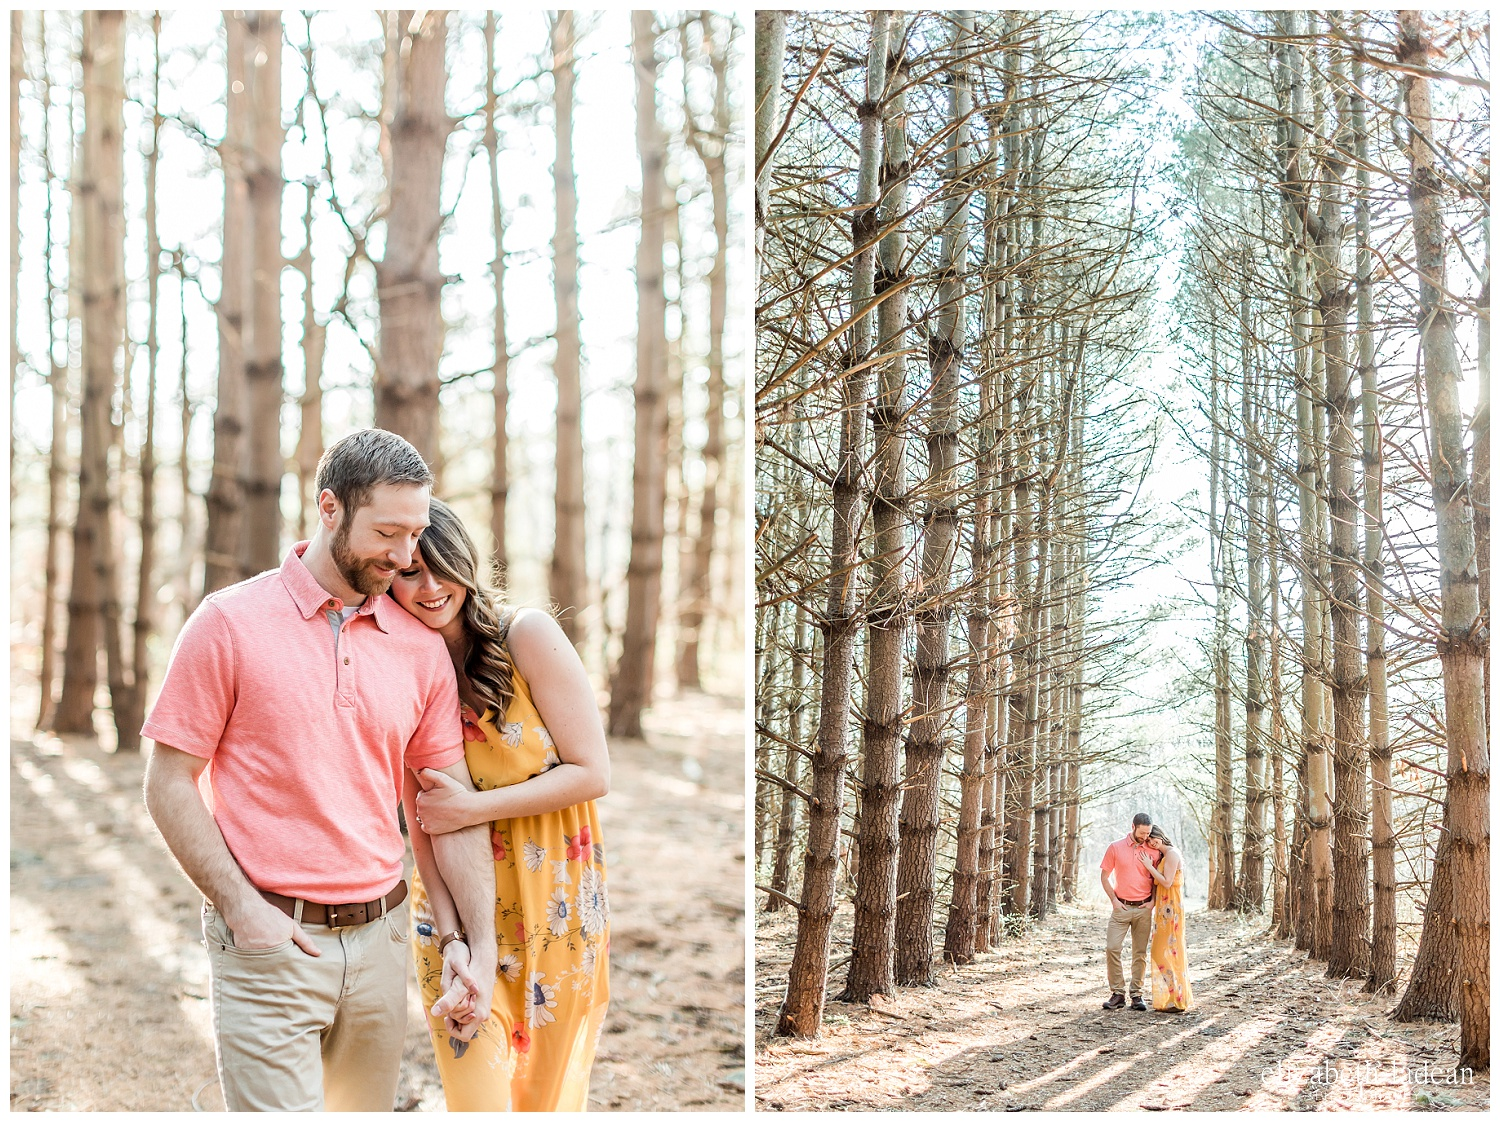 Kansas-City-Engagement-Photographer-K+D2018-elizabeth-ladean-photography-photo-_6617.jpg